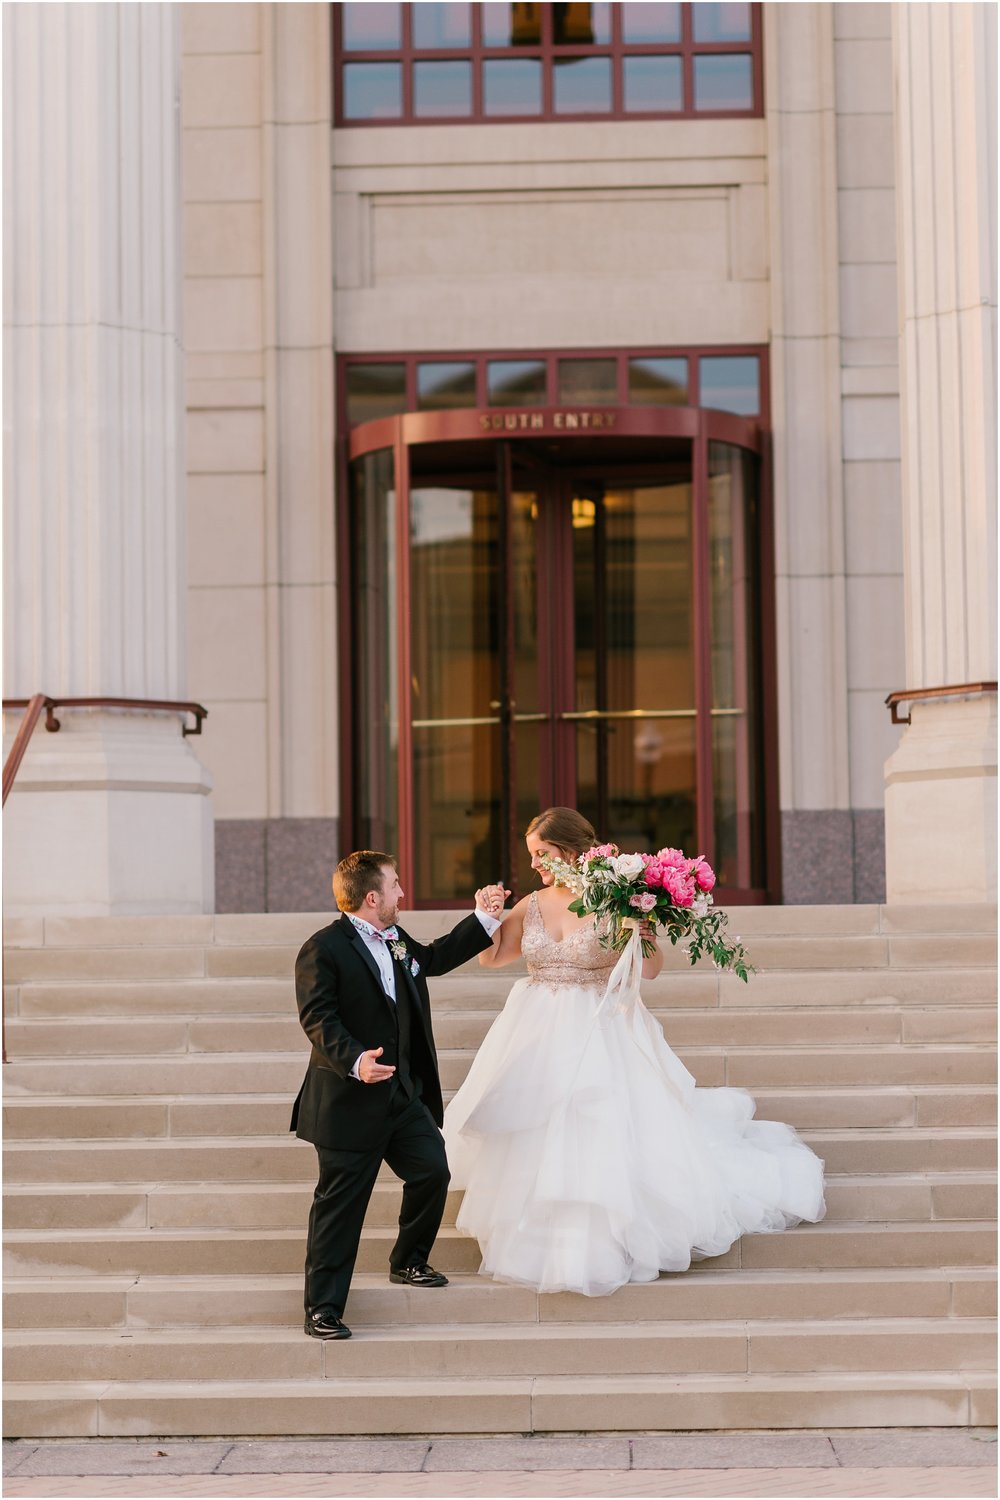 Rebecca_Shehorn_Photography_Indianapolis_Wedding_Photographer_8869.jpg